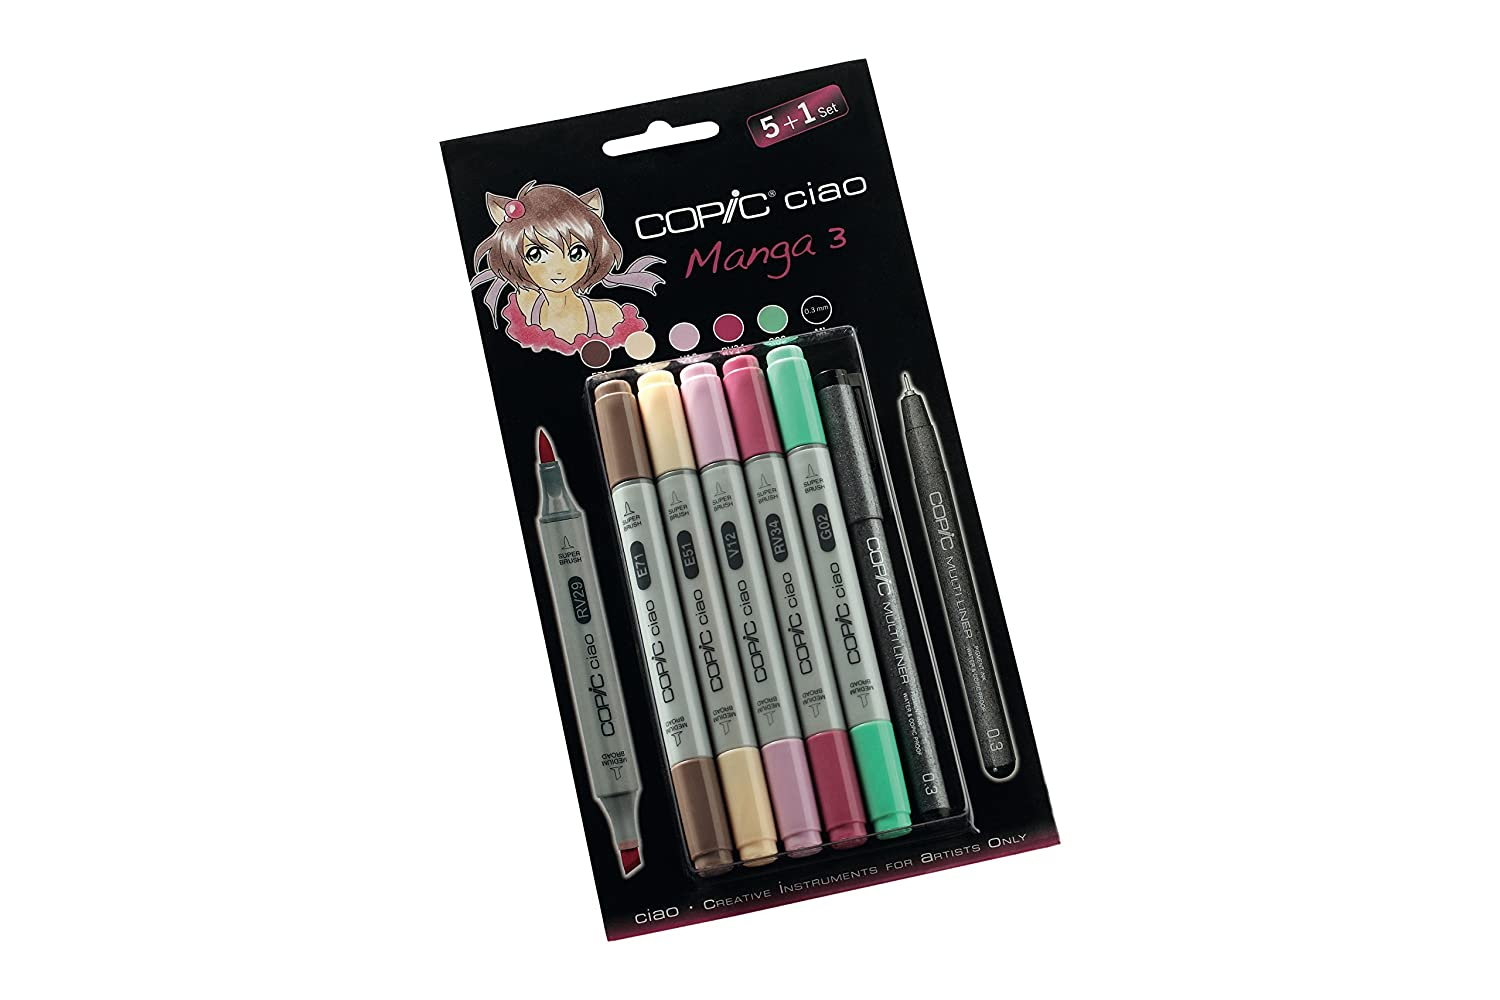 Copic 22075558 Ciao Set 5+1, Manga 3 Too Marker Products Inc.